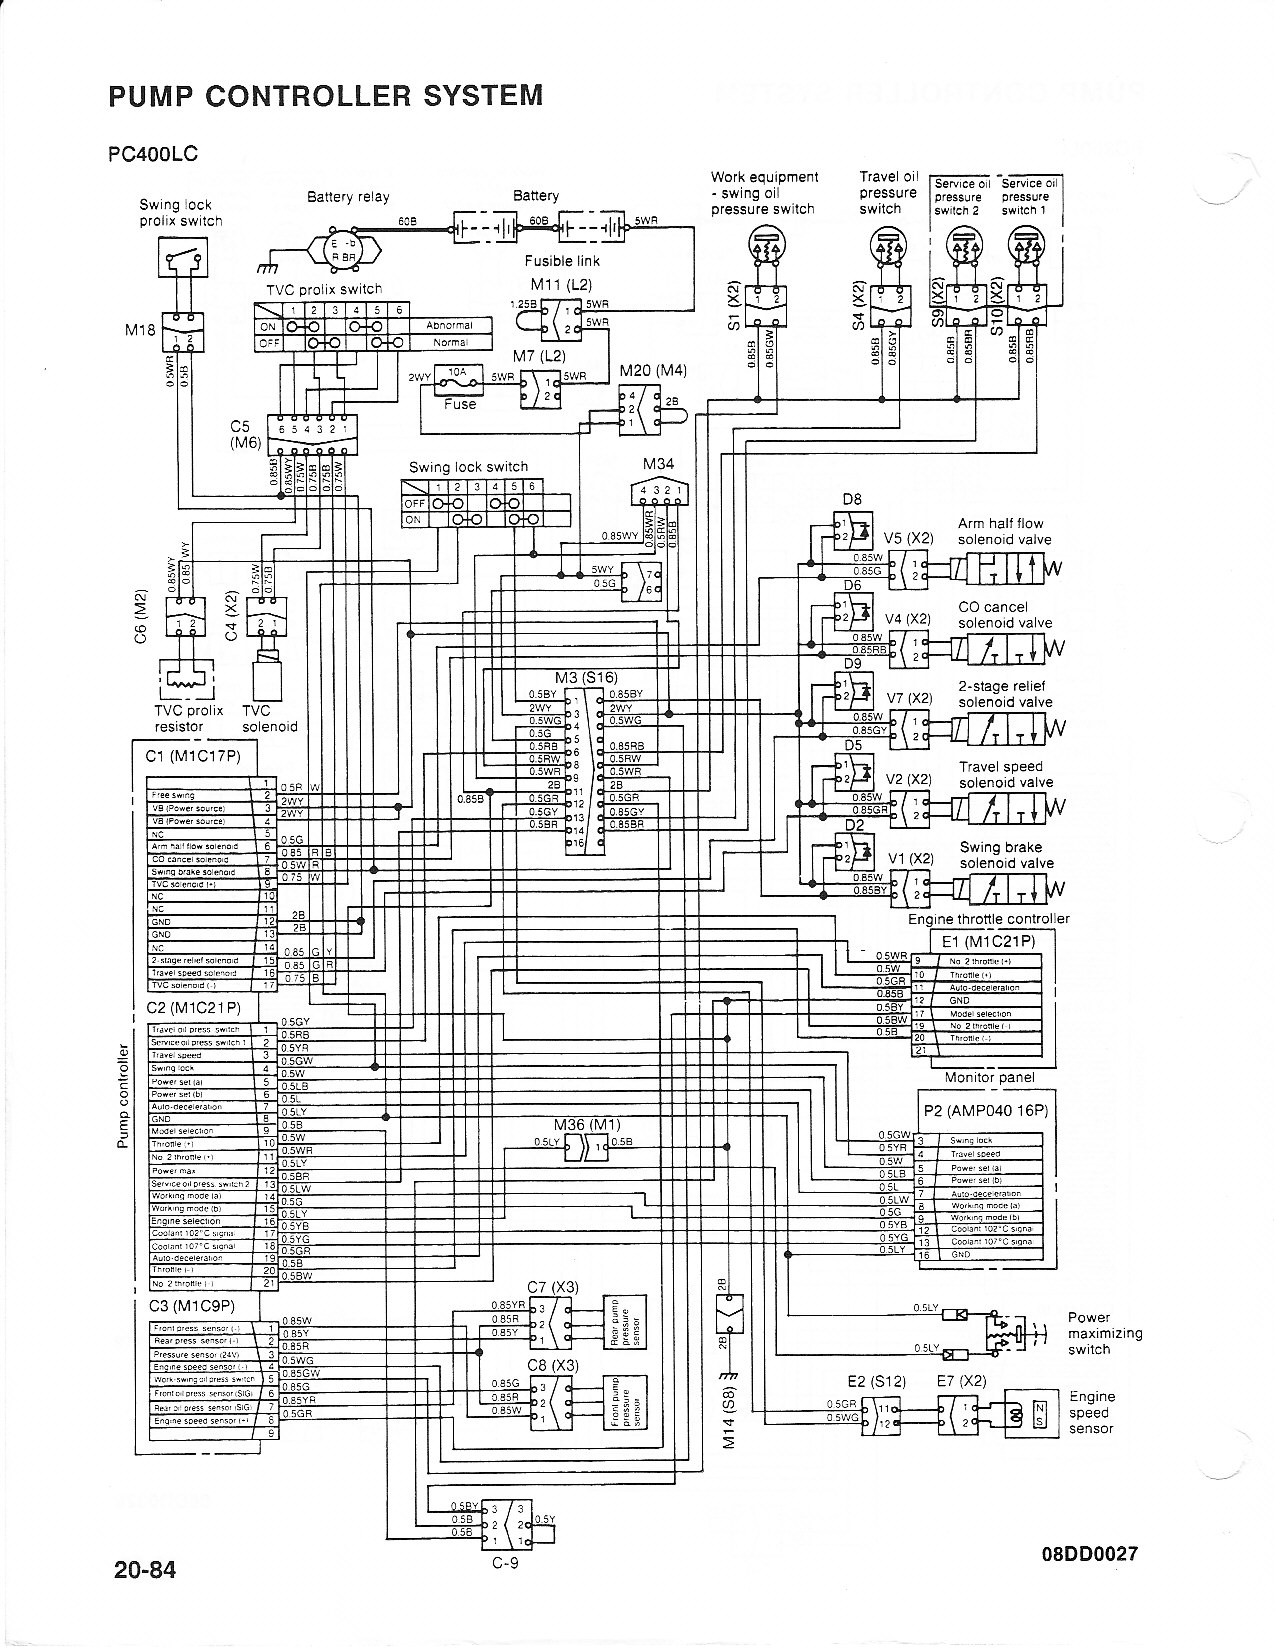 2012 02 21_021135_pc400_0002 schematic wiring diagram sterling truck schematic wiring  at gsmportal.co